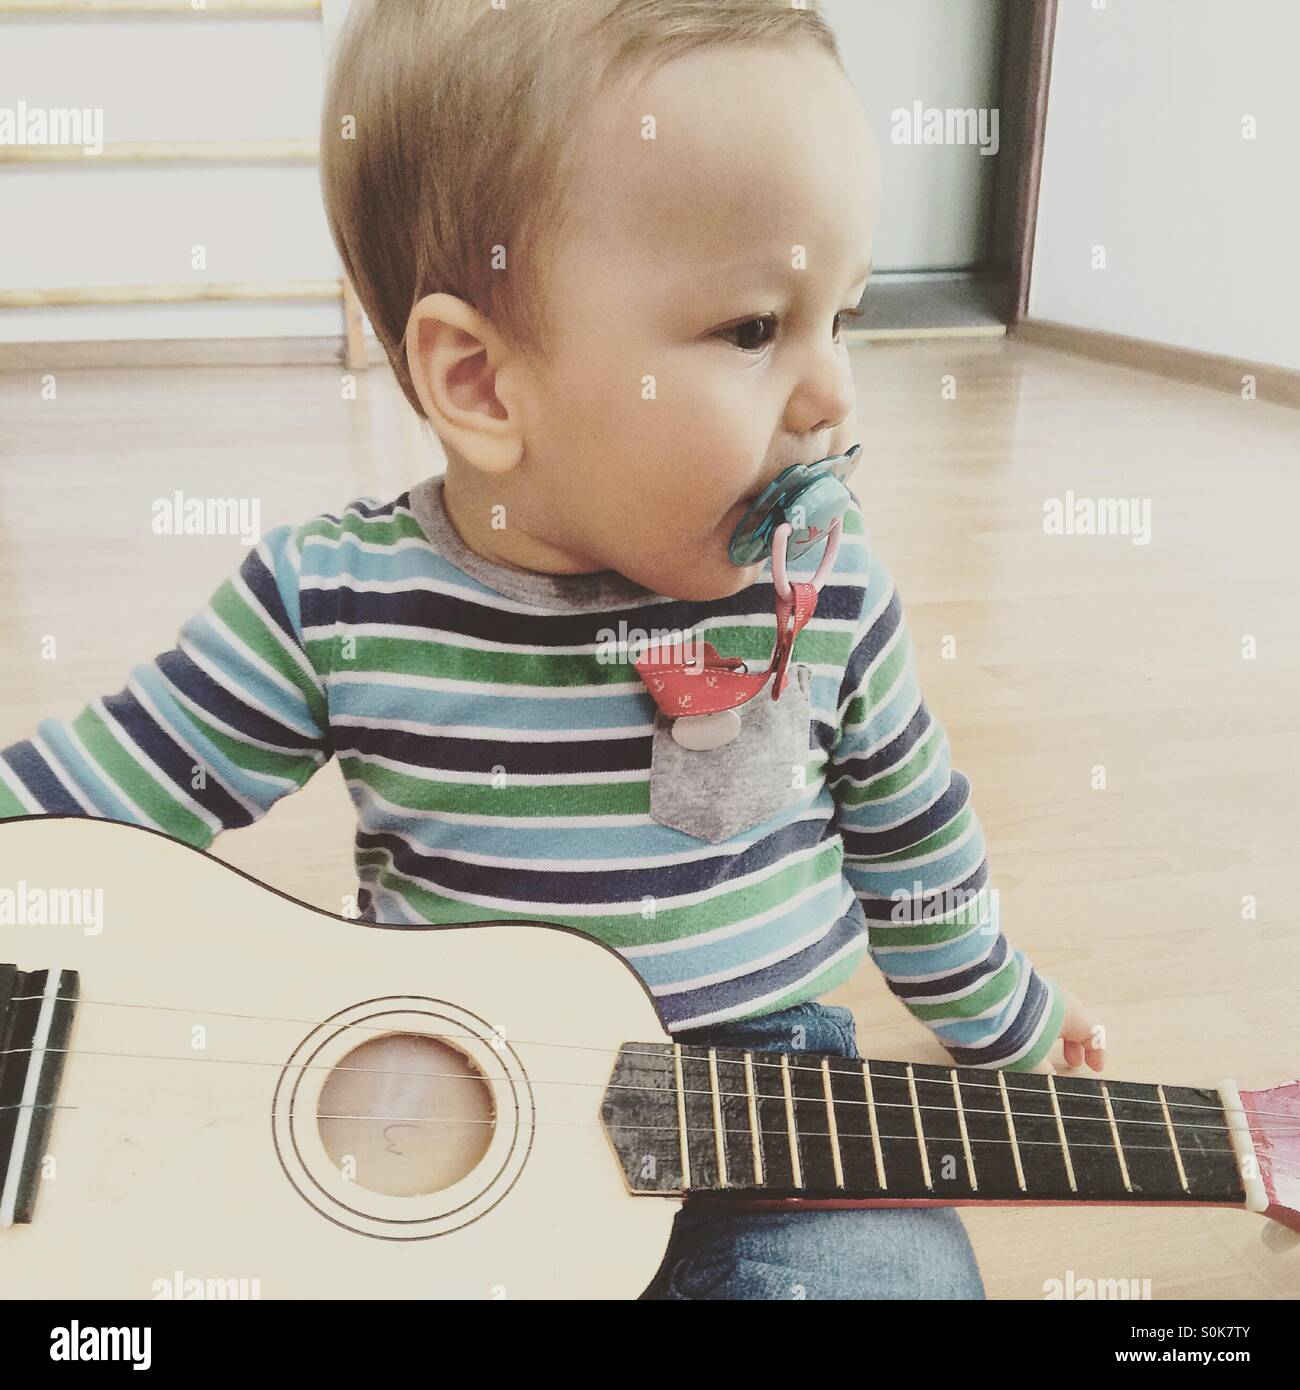 Baby boy playing guitar , looking to the side, sitting on a wooden floor in an empty room, with a pacifier in his - Stock Image